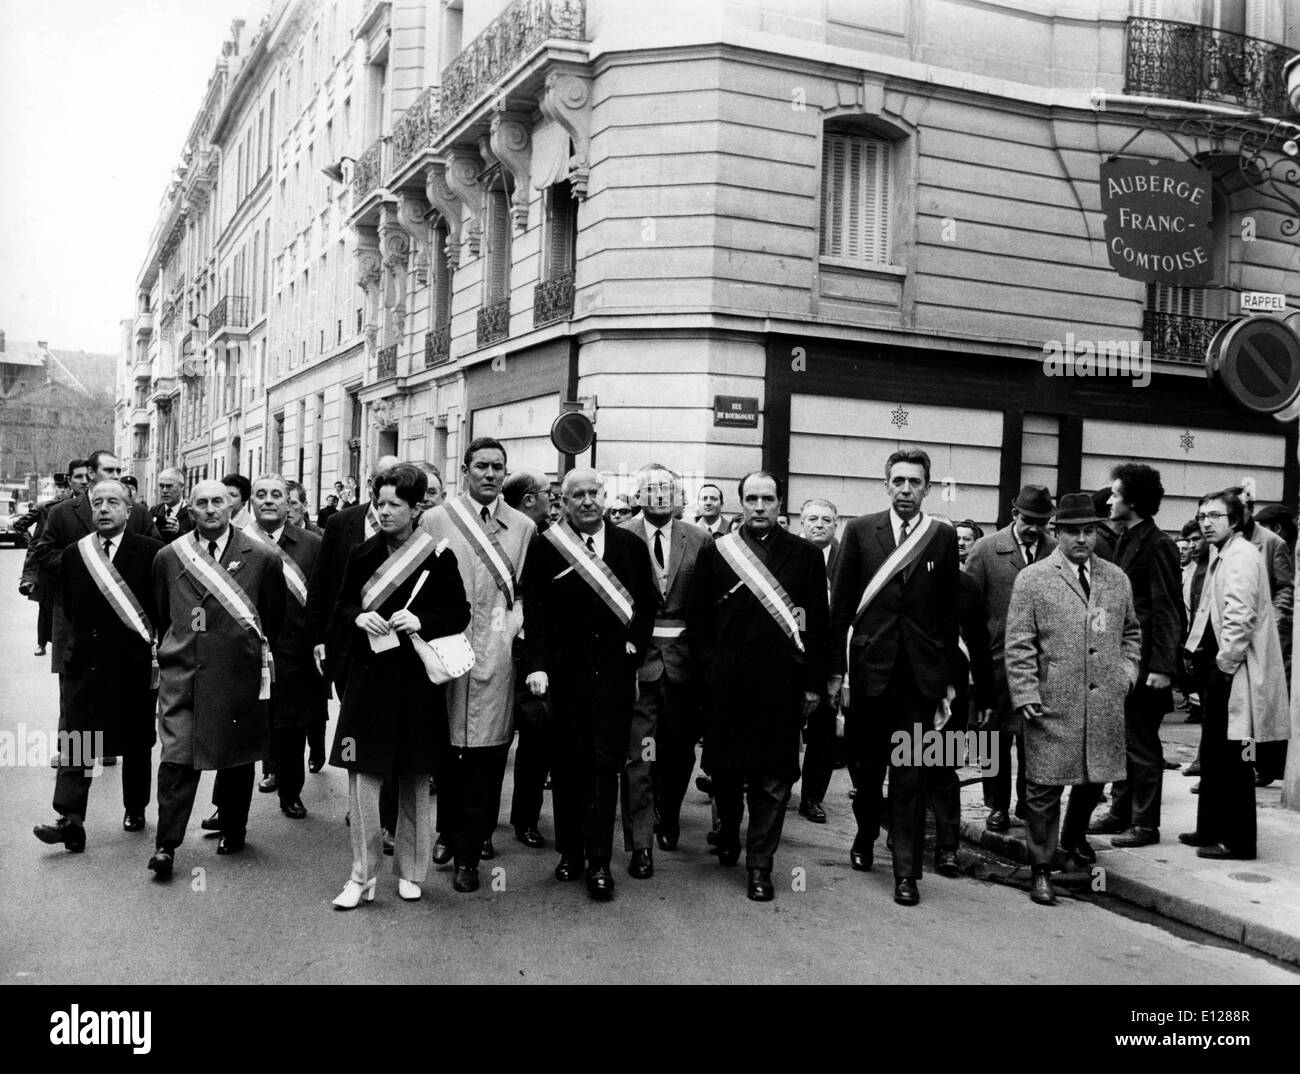 Apr 01, 2009 - London, England, United Kingdom - GASTON DEFFERRE (September 14, 1910 - May 7, 1986, Marseille) was a French socialist politician. Lawyer and member of the SFIO Socialist Party (French Section of the Workers' International), he was a member of the Brutus Network, a Resistance Socialist group during World War II. A long-standing member of the National Assembly (1945-1958, 1962-1986) and member of the Senate (1959-1962), he also served for many years as mayor of Marseille (1944-1945, 1953-1986) (Credit Image: KEYSTONE Pictures USA/ZUMAPRESS.com) - Stock Image